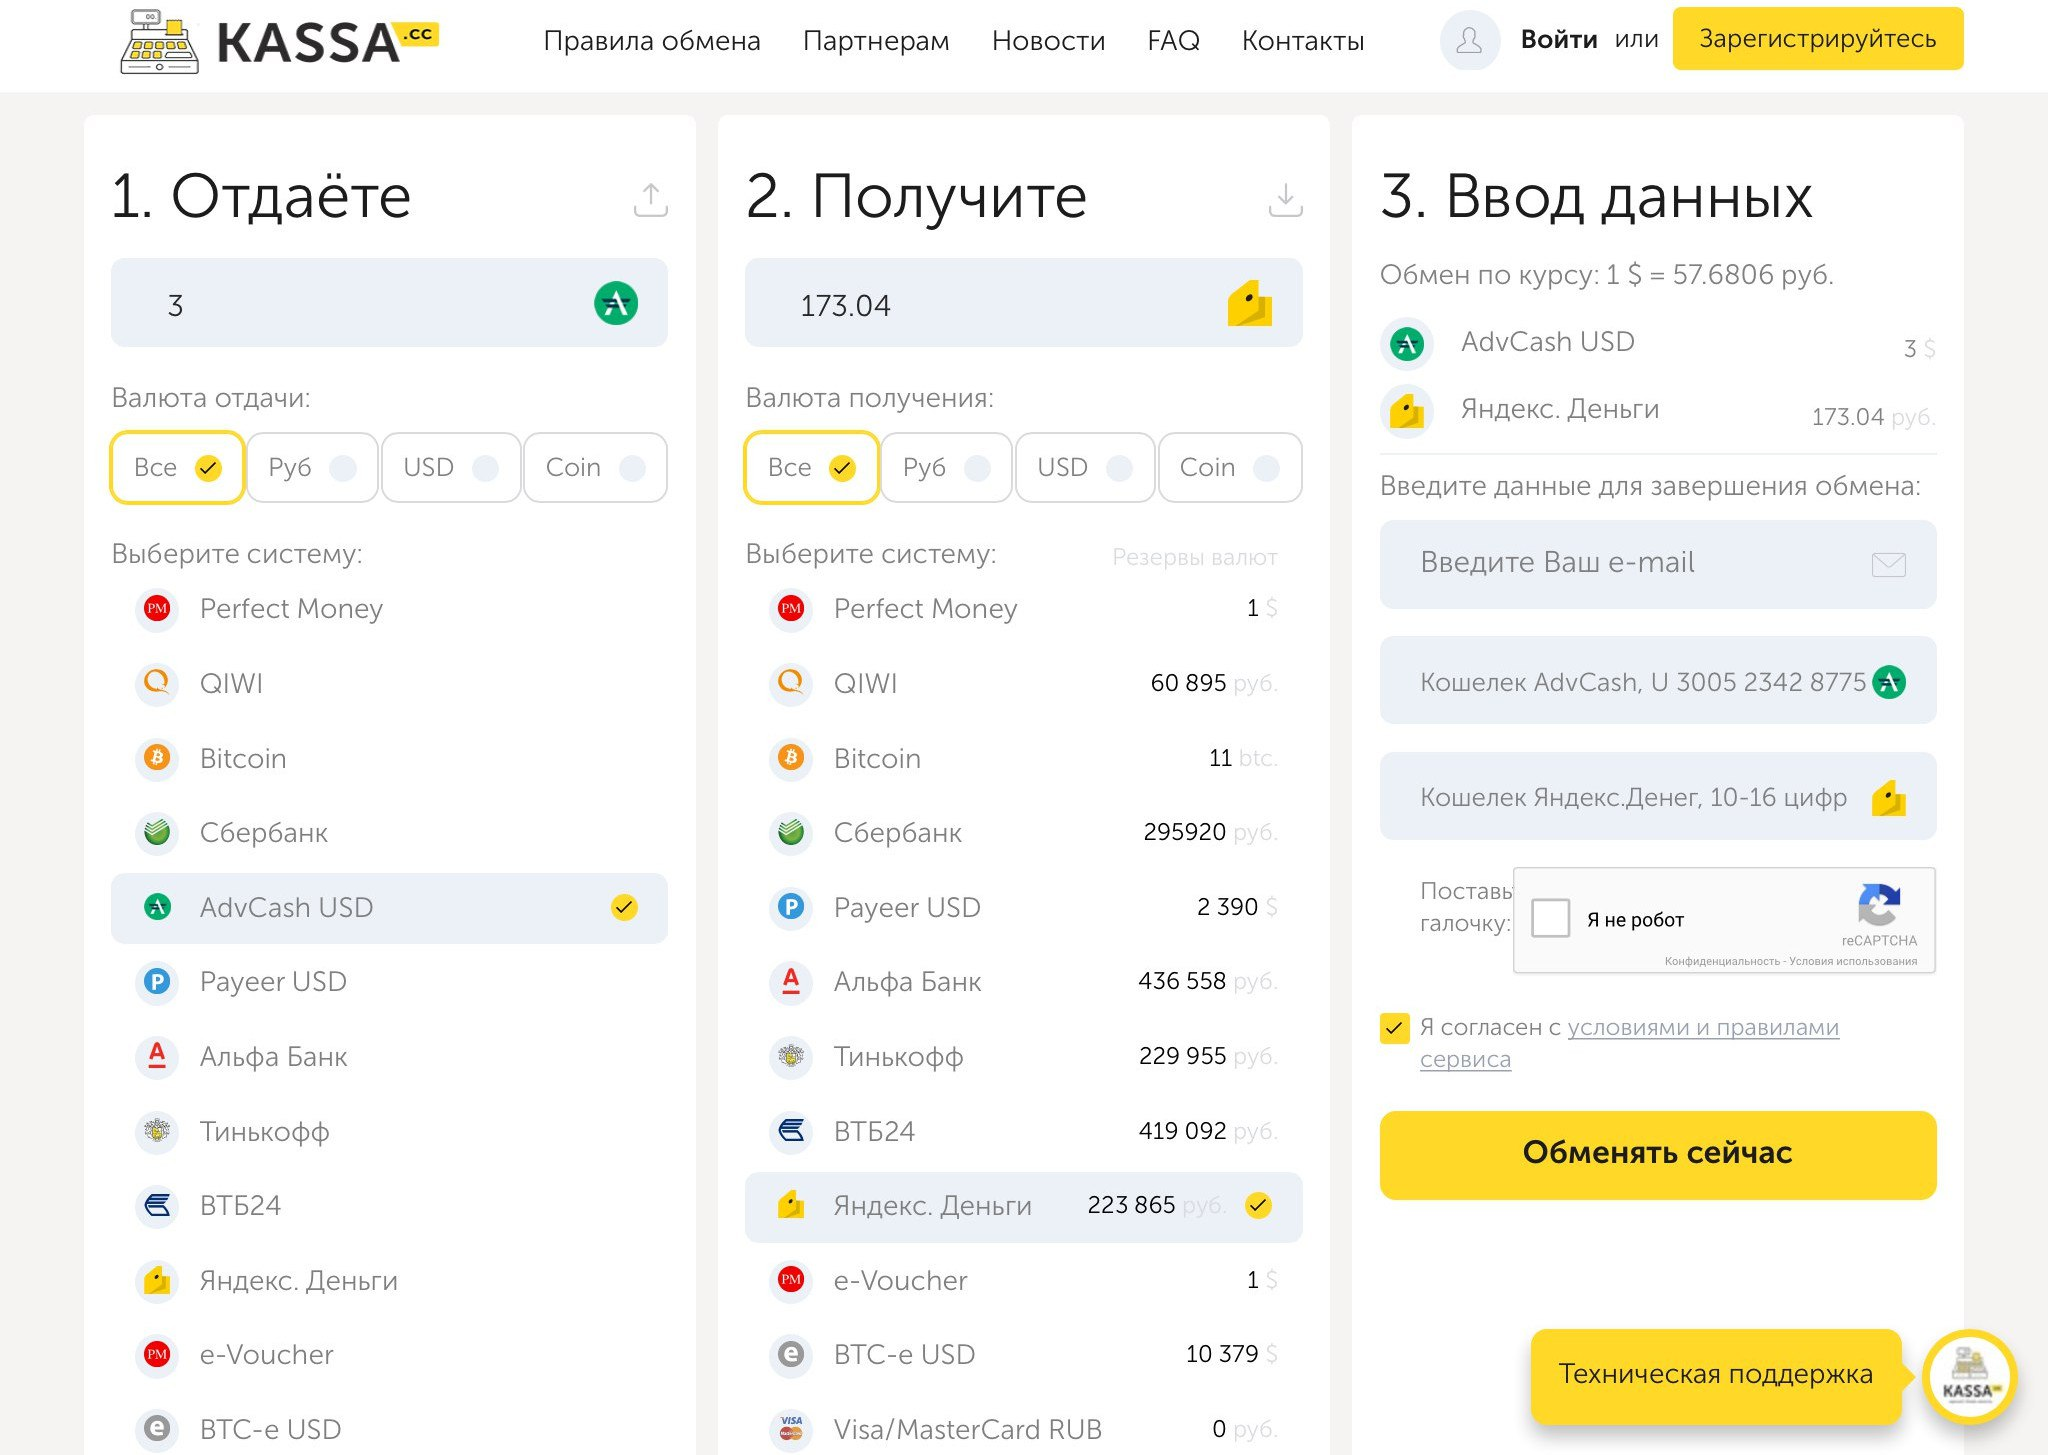 How to transfer money from a phone to a Yandex wallet